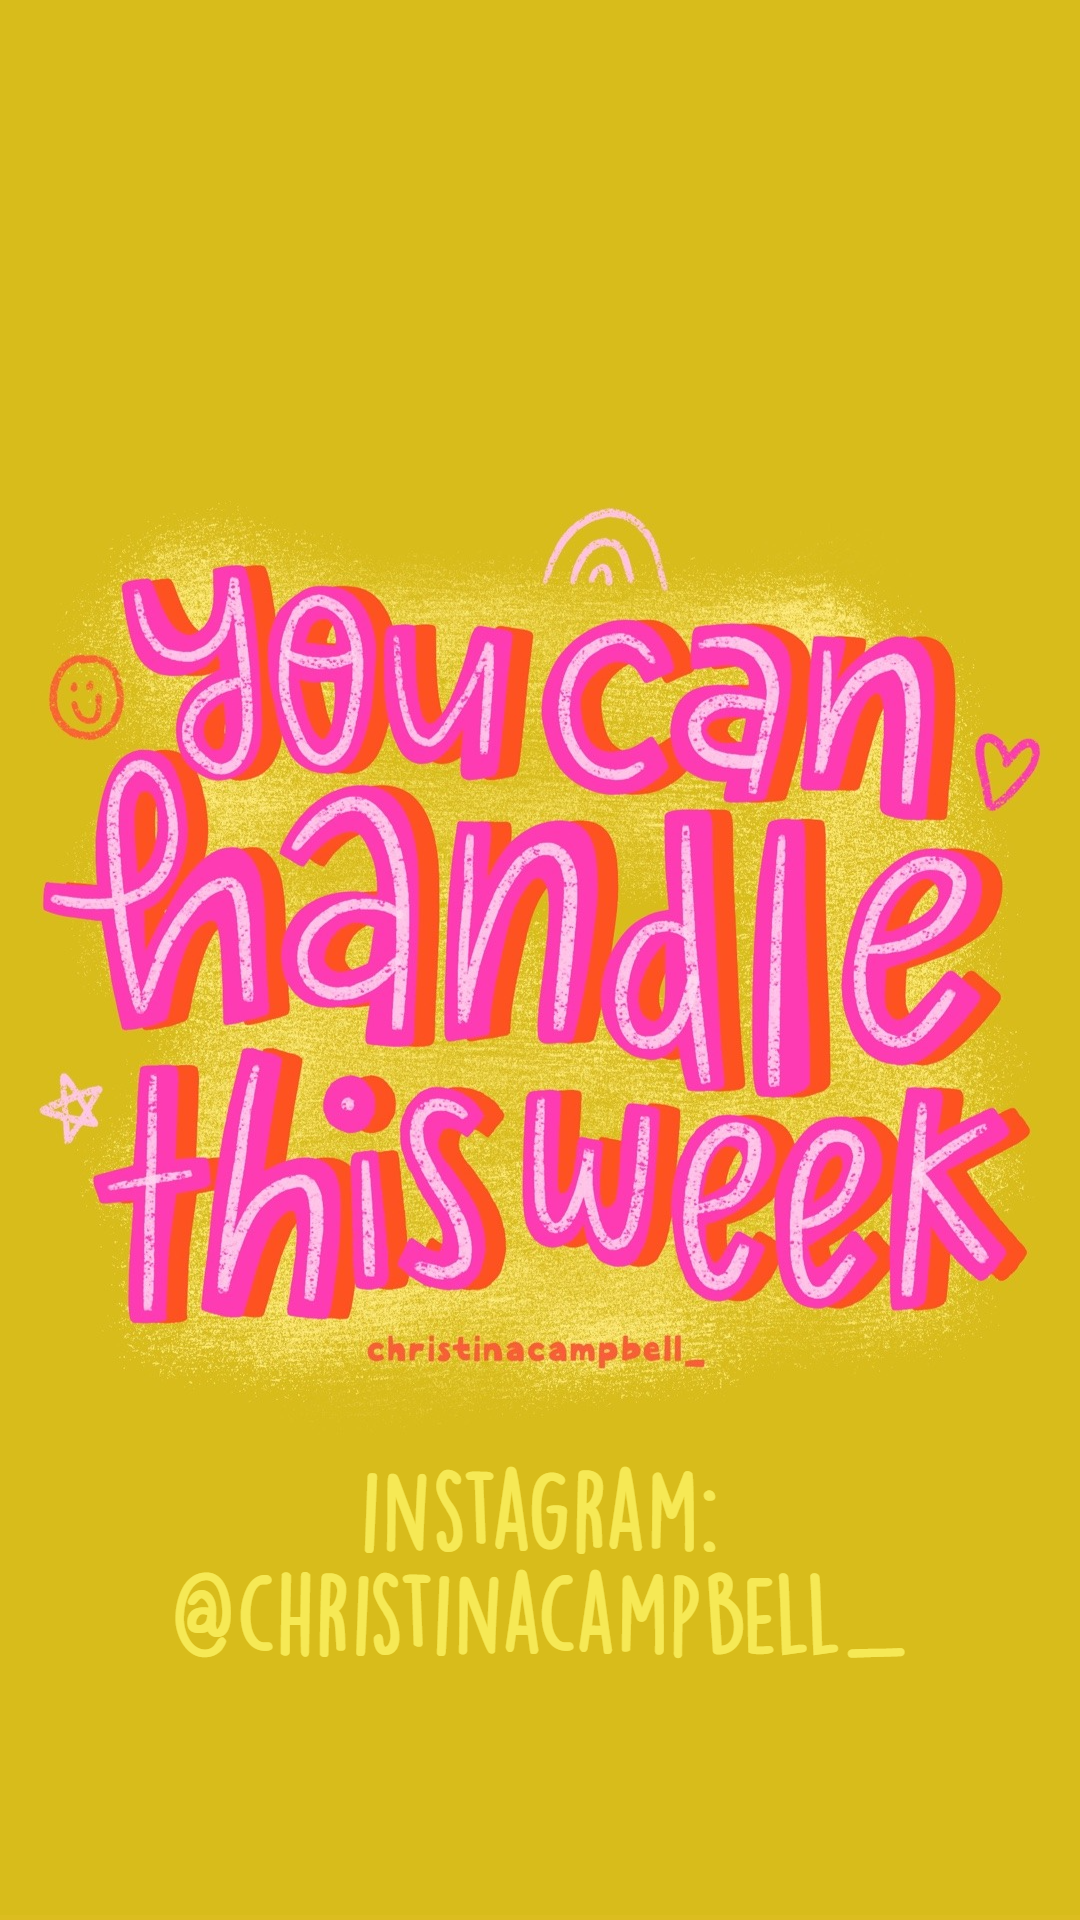 You can handle this week   monday motivation